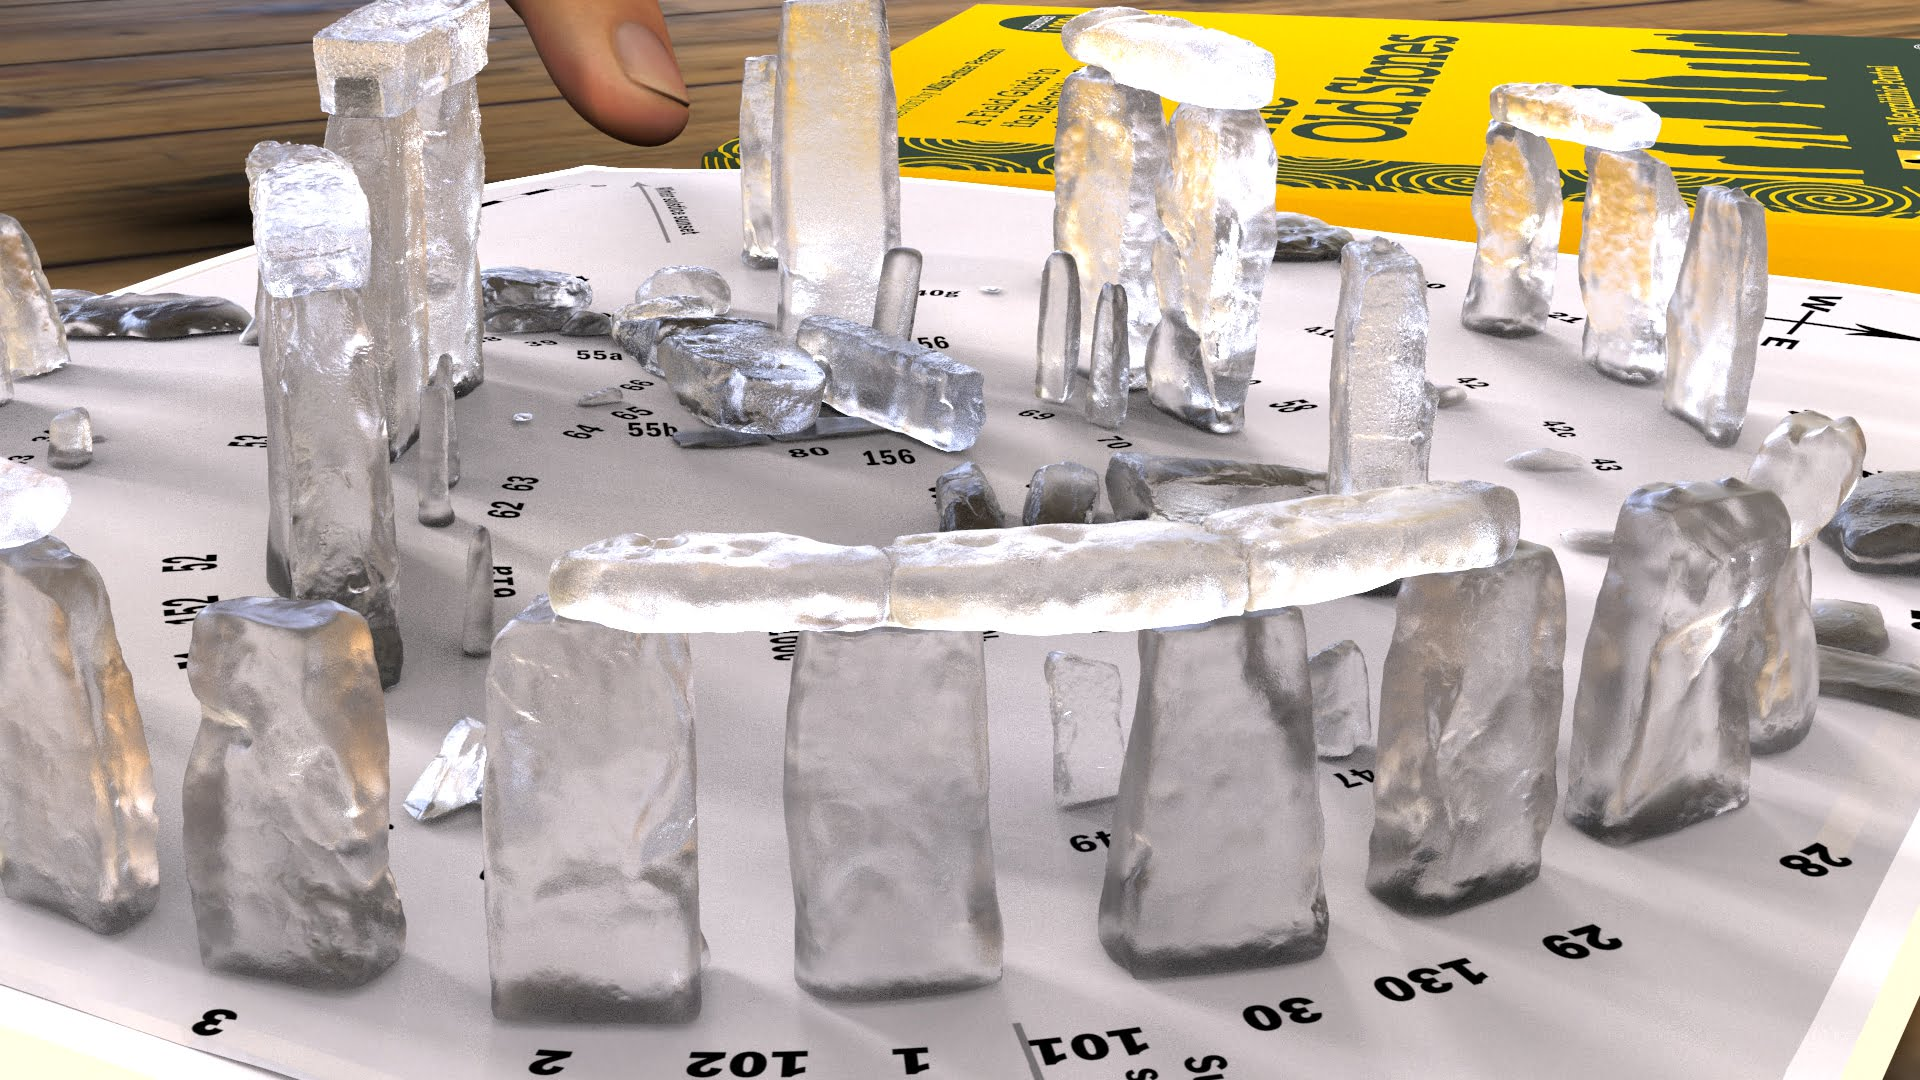 Buy Stonehenge Models: Glass model of Stonehenge accurate and detailed at 200th scale on plain white map 005  - 200th scale pick n mix -